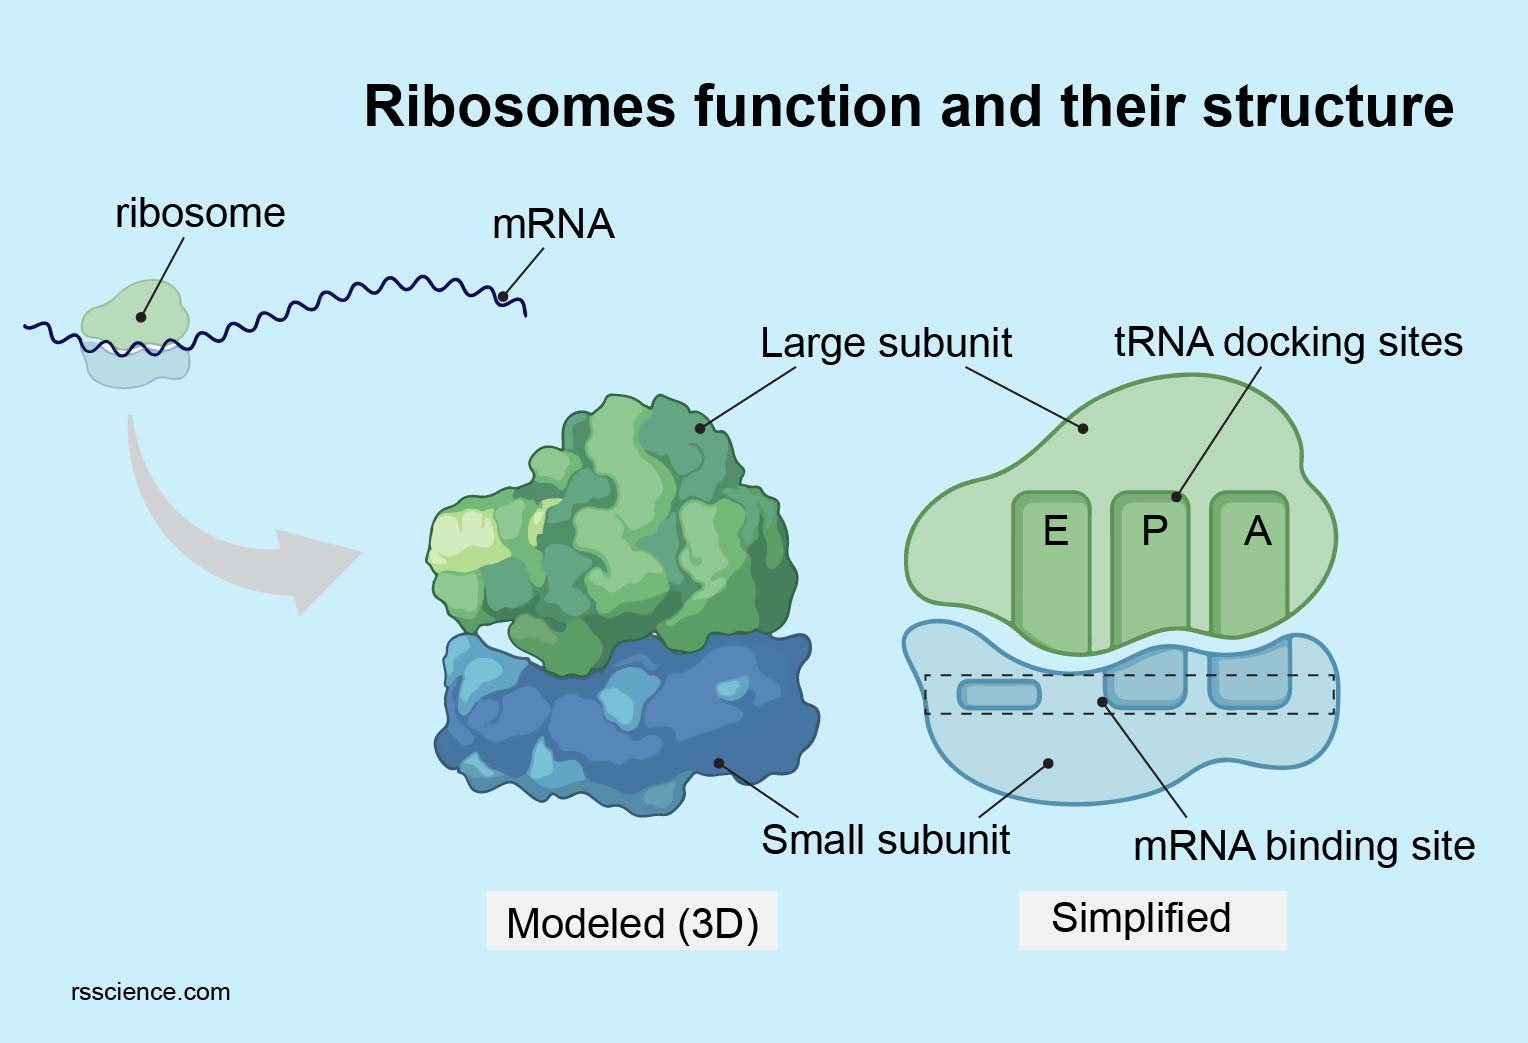 Ribosome function and their structure